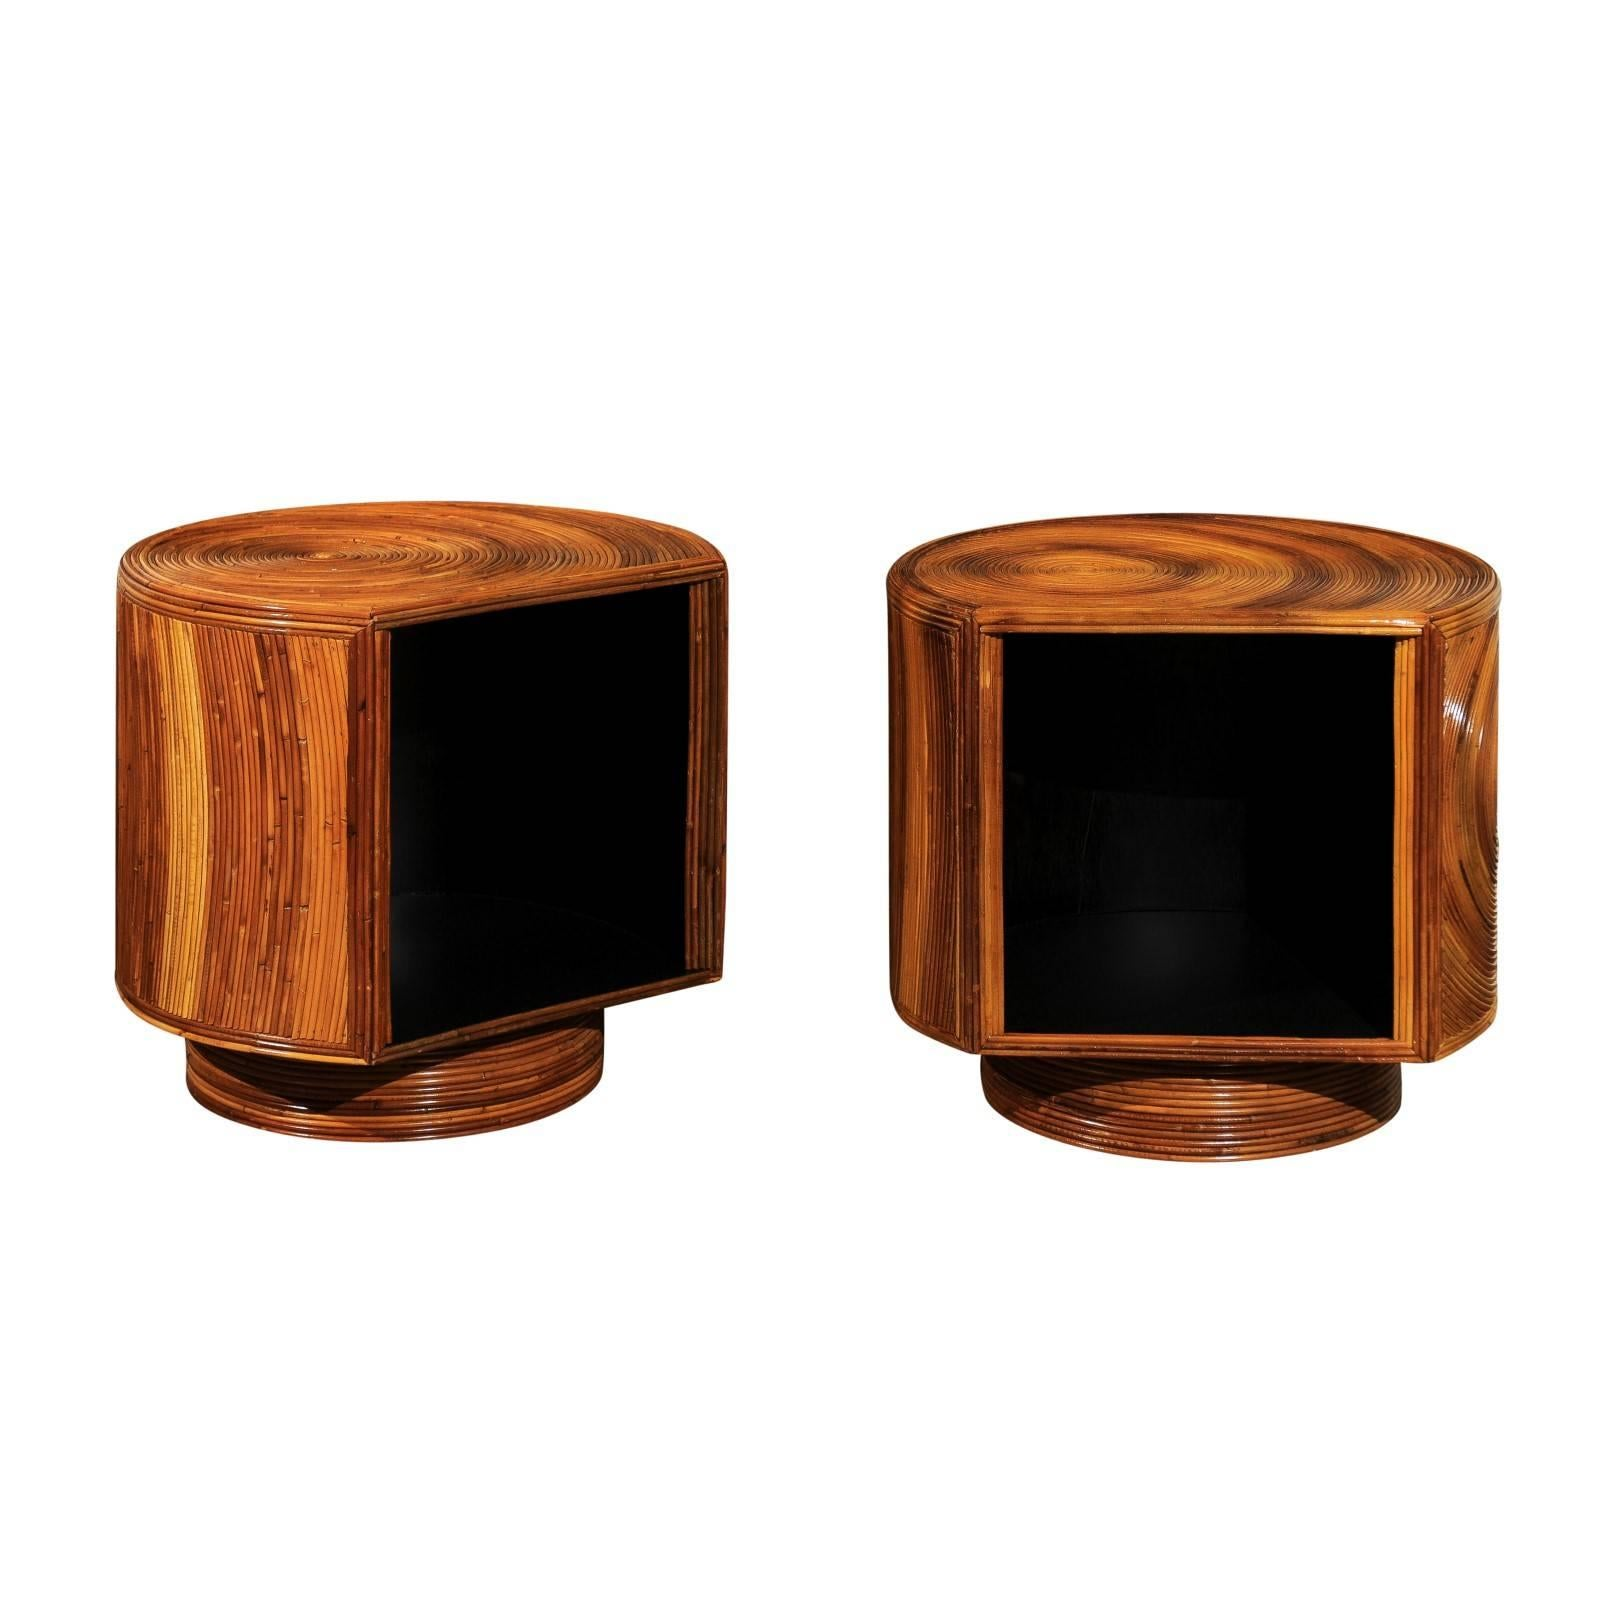 Chic Restored Pair of Swivel Bamboo and Black Lacquer End Tables, circa 1975